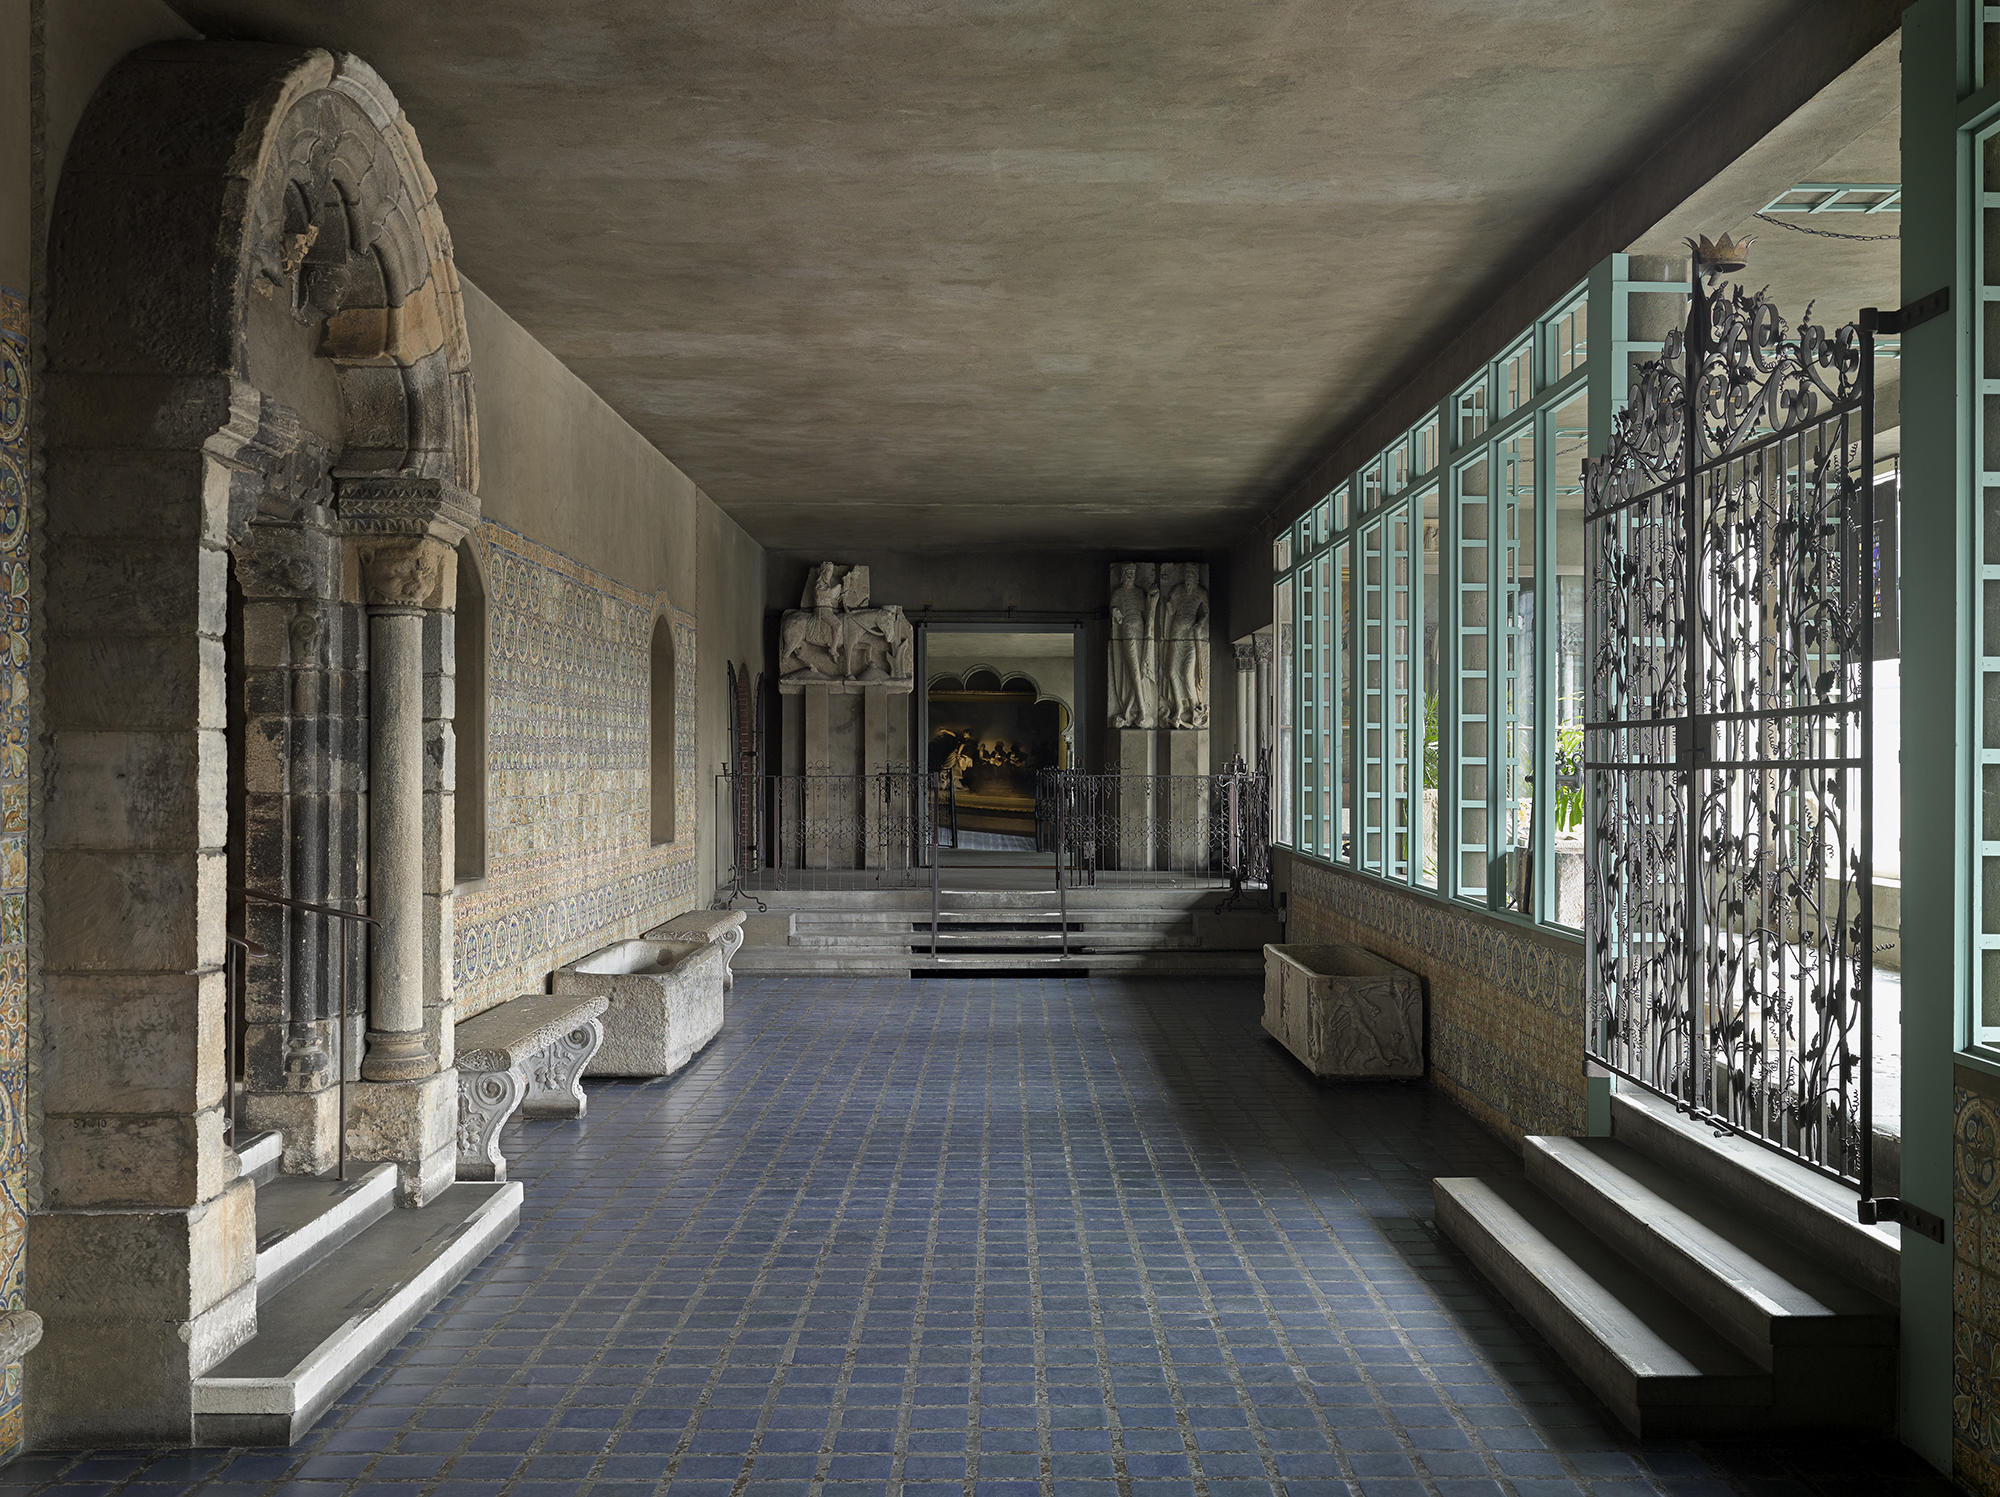 Another view of the Spanish Cloister at the Isabella Stewart Gardner Museum.